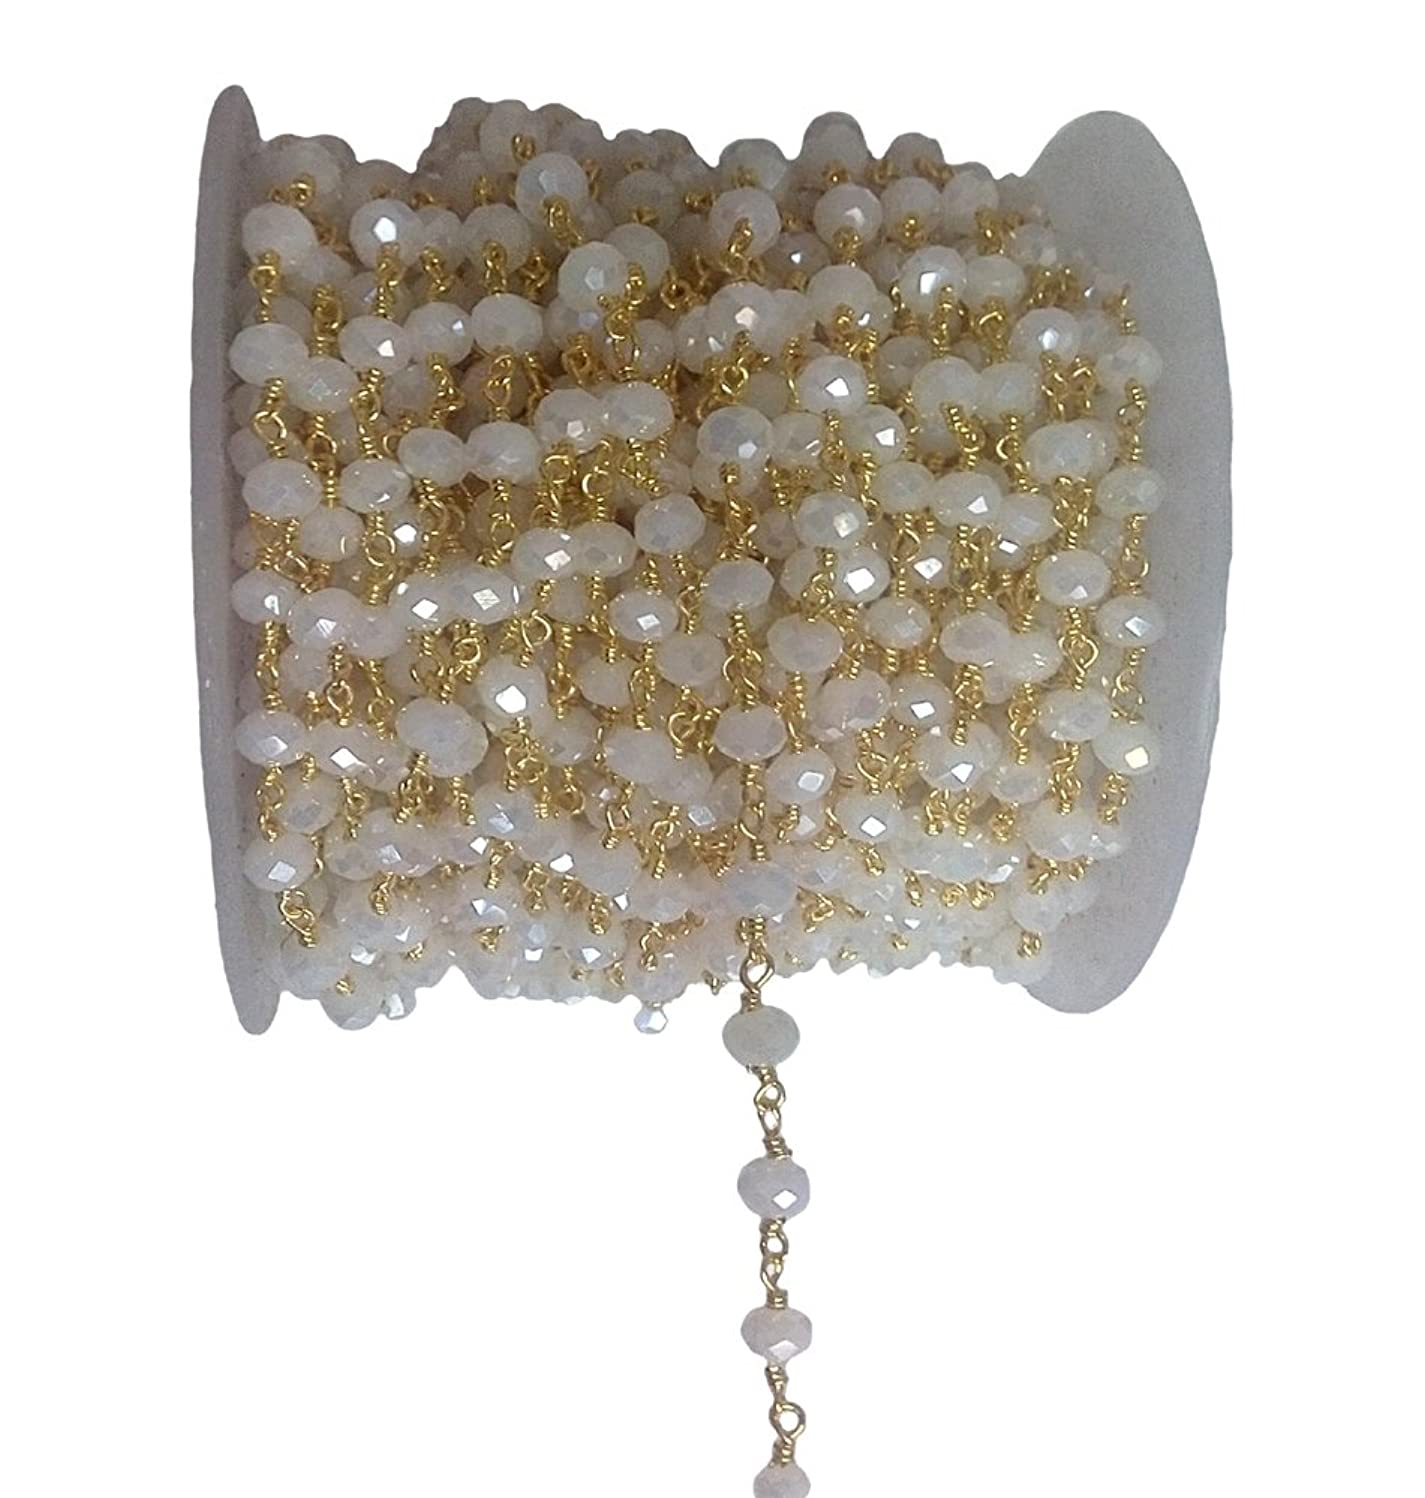 3 feet White Chalcedony Mystic Quartz Bead 6mm 24k Gold Plated Rosary Style Chain by bestinbeads, Hydro Quartz Beaded Chain by The Foot, Jewelry Making Chain